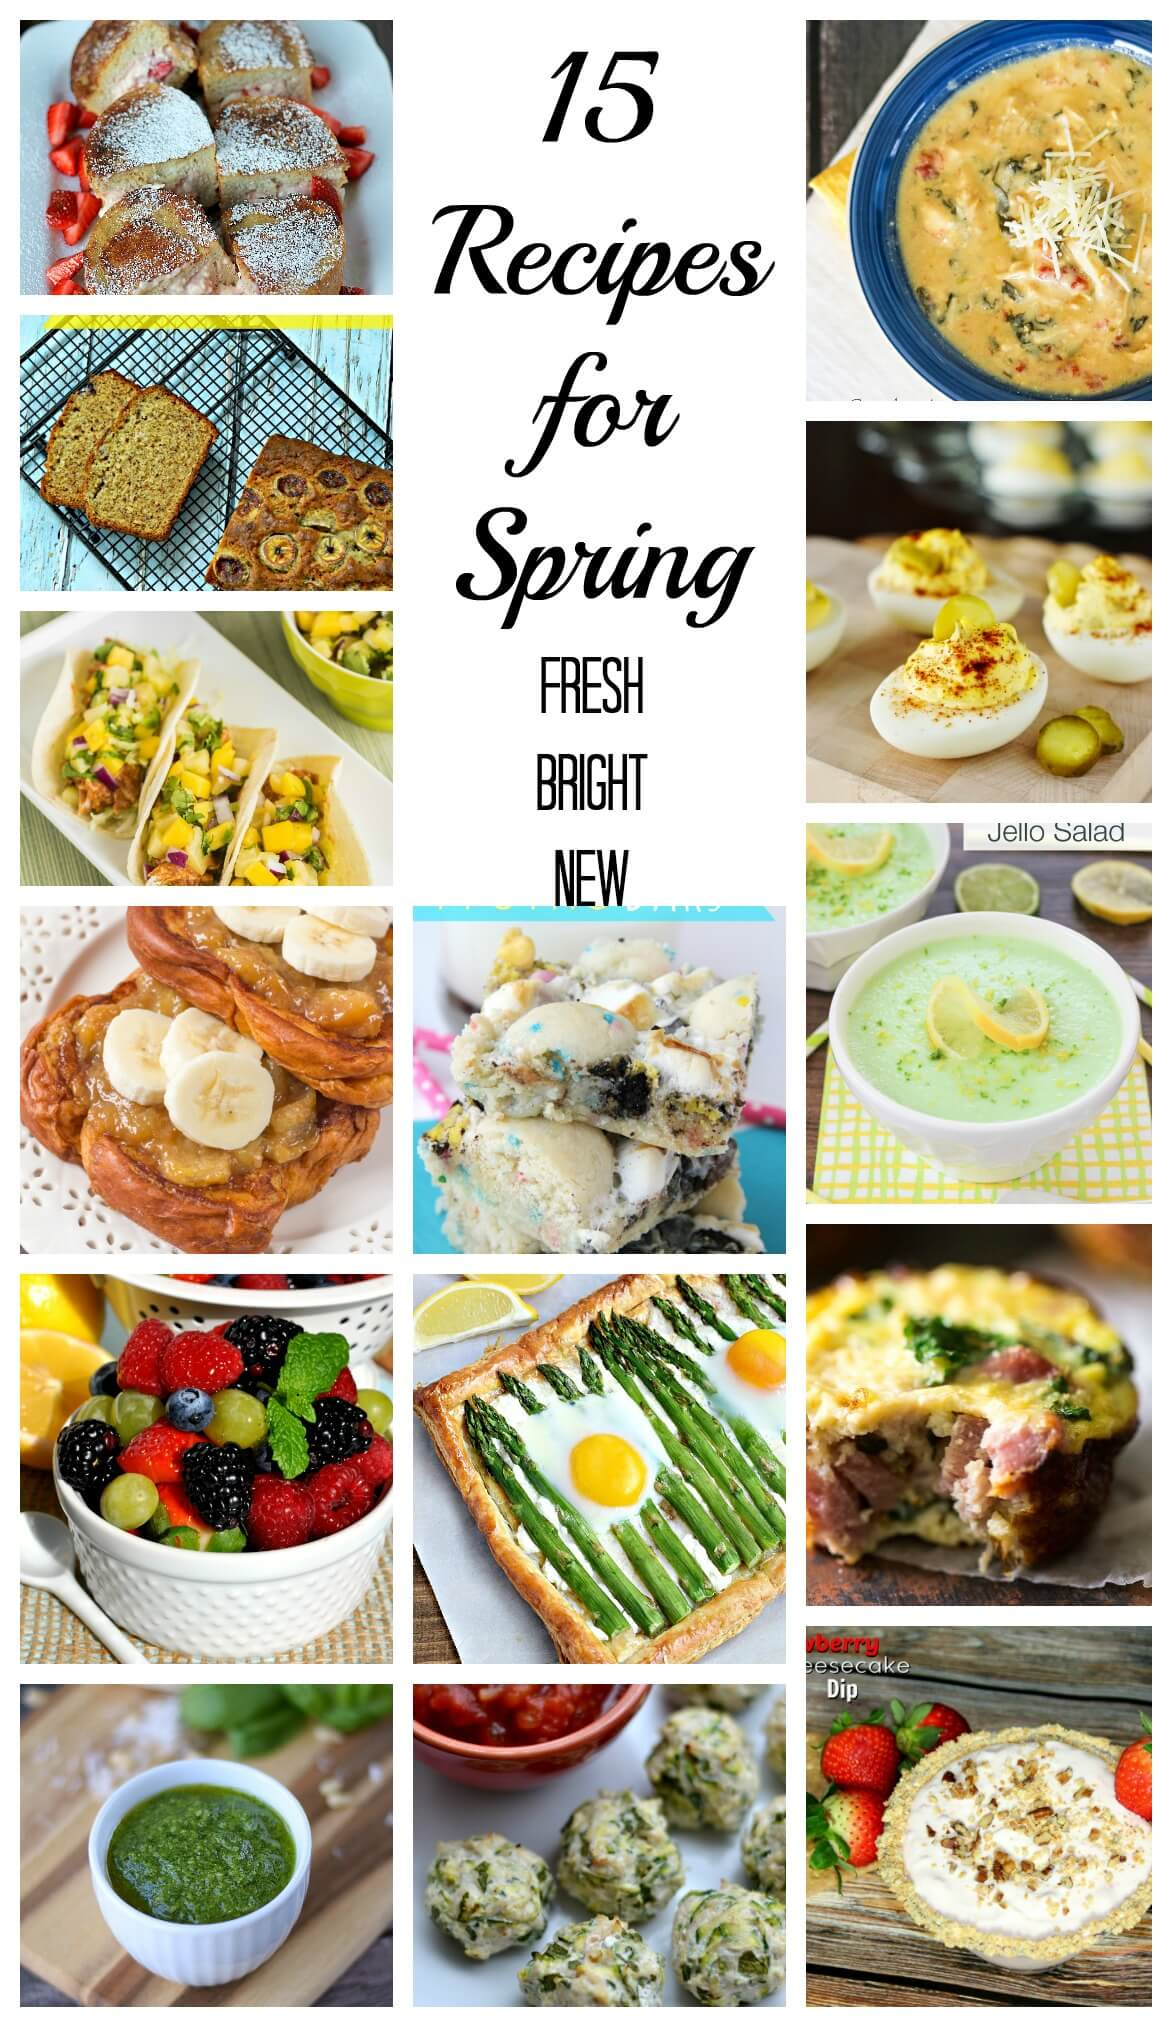 Recipes for Spring